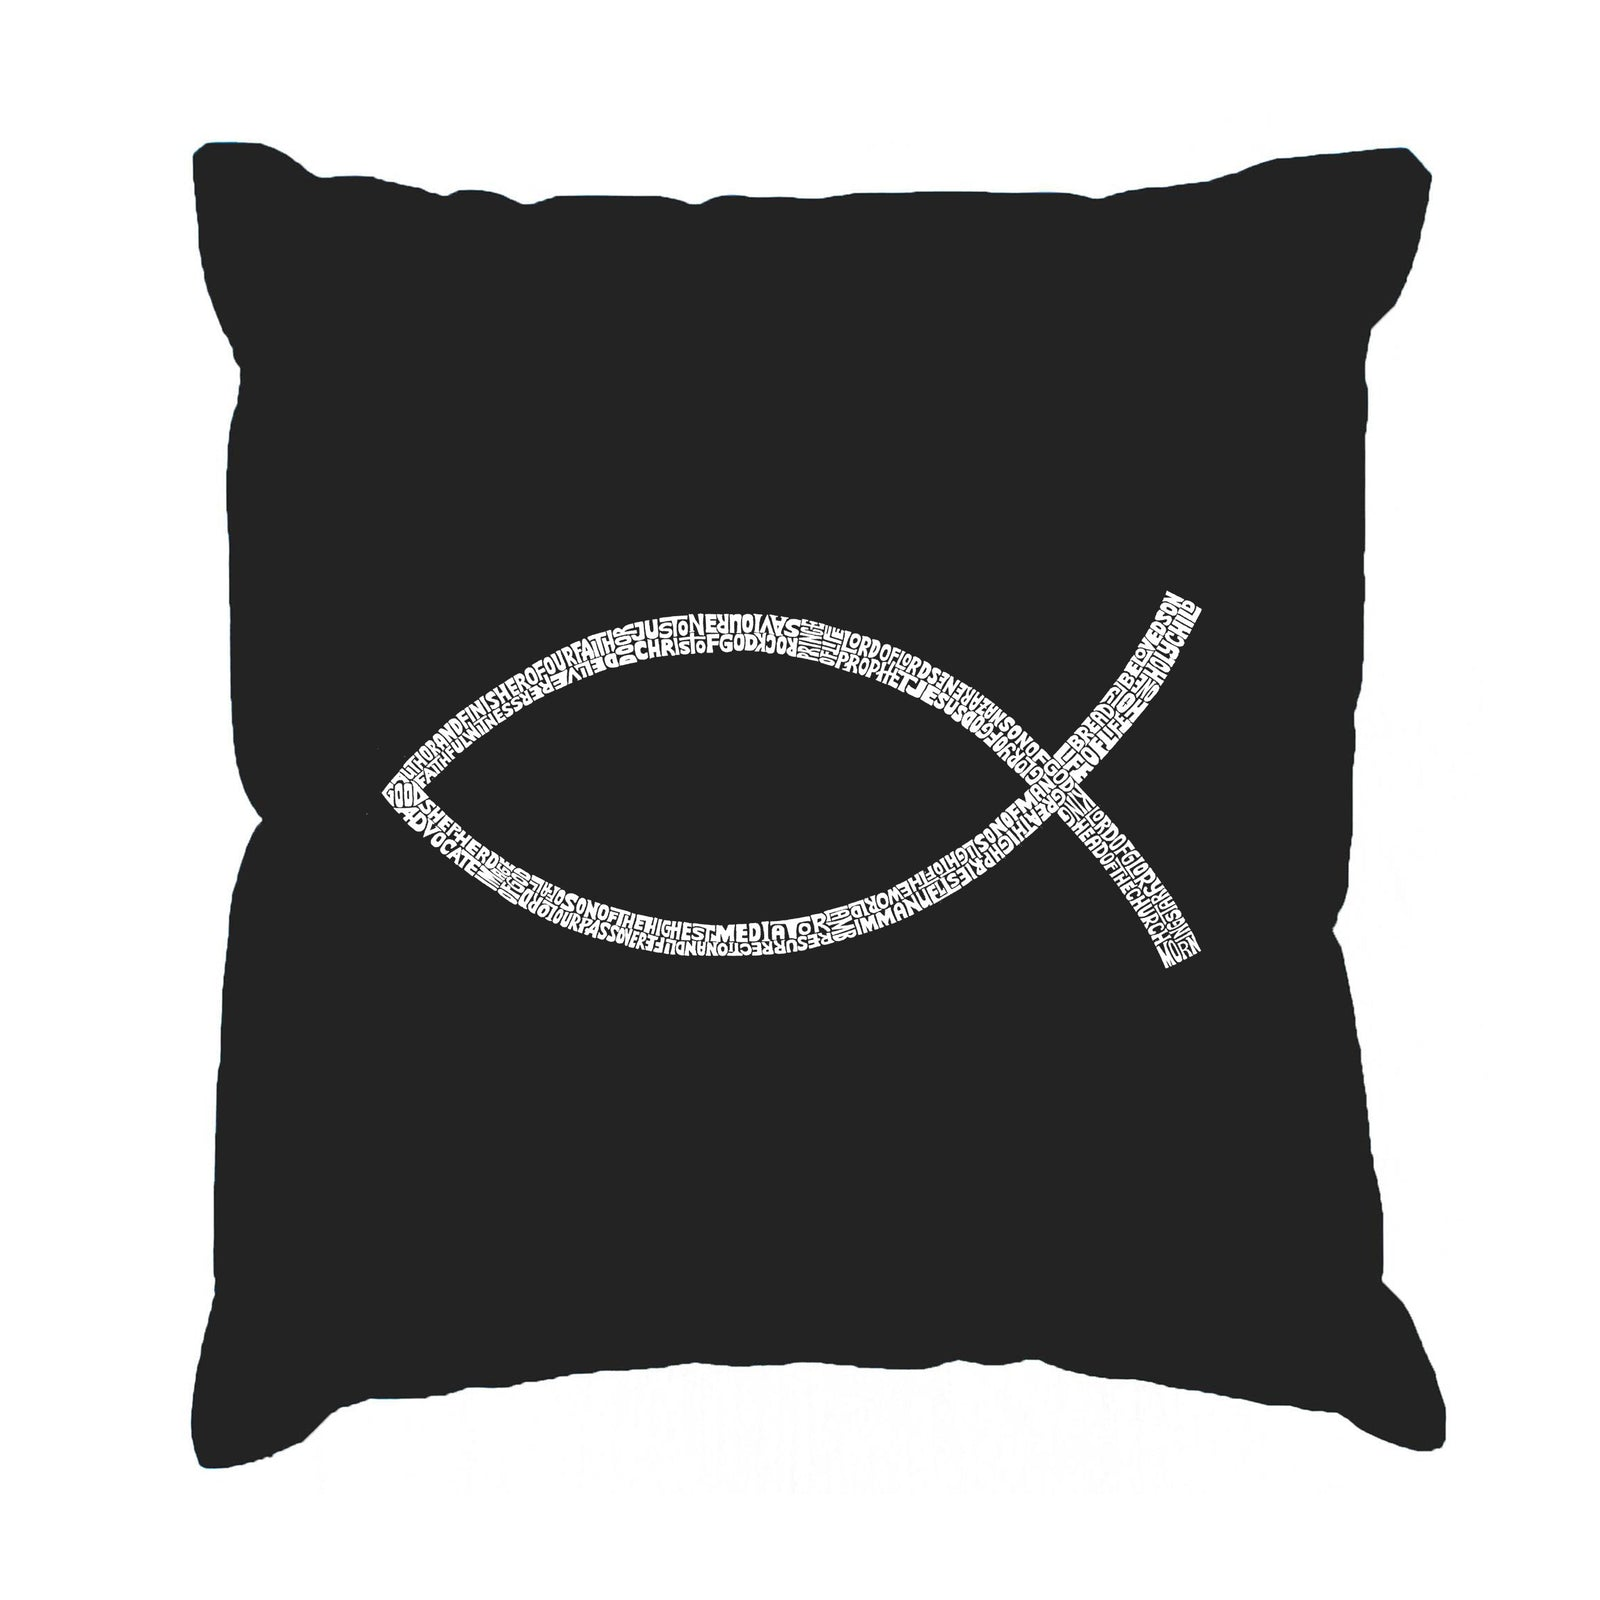 Throw Pillow Cover - JESUS FISH